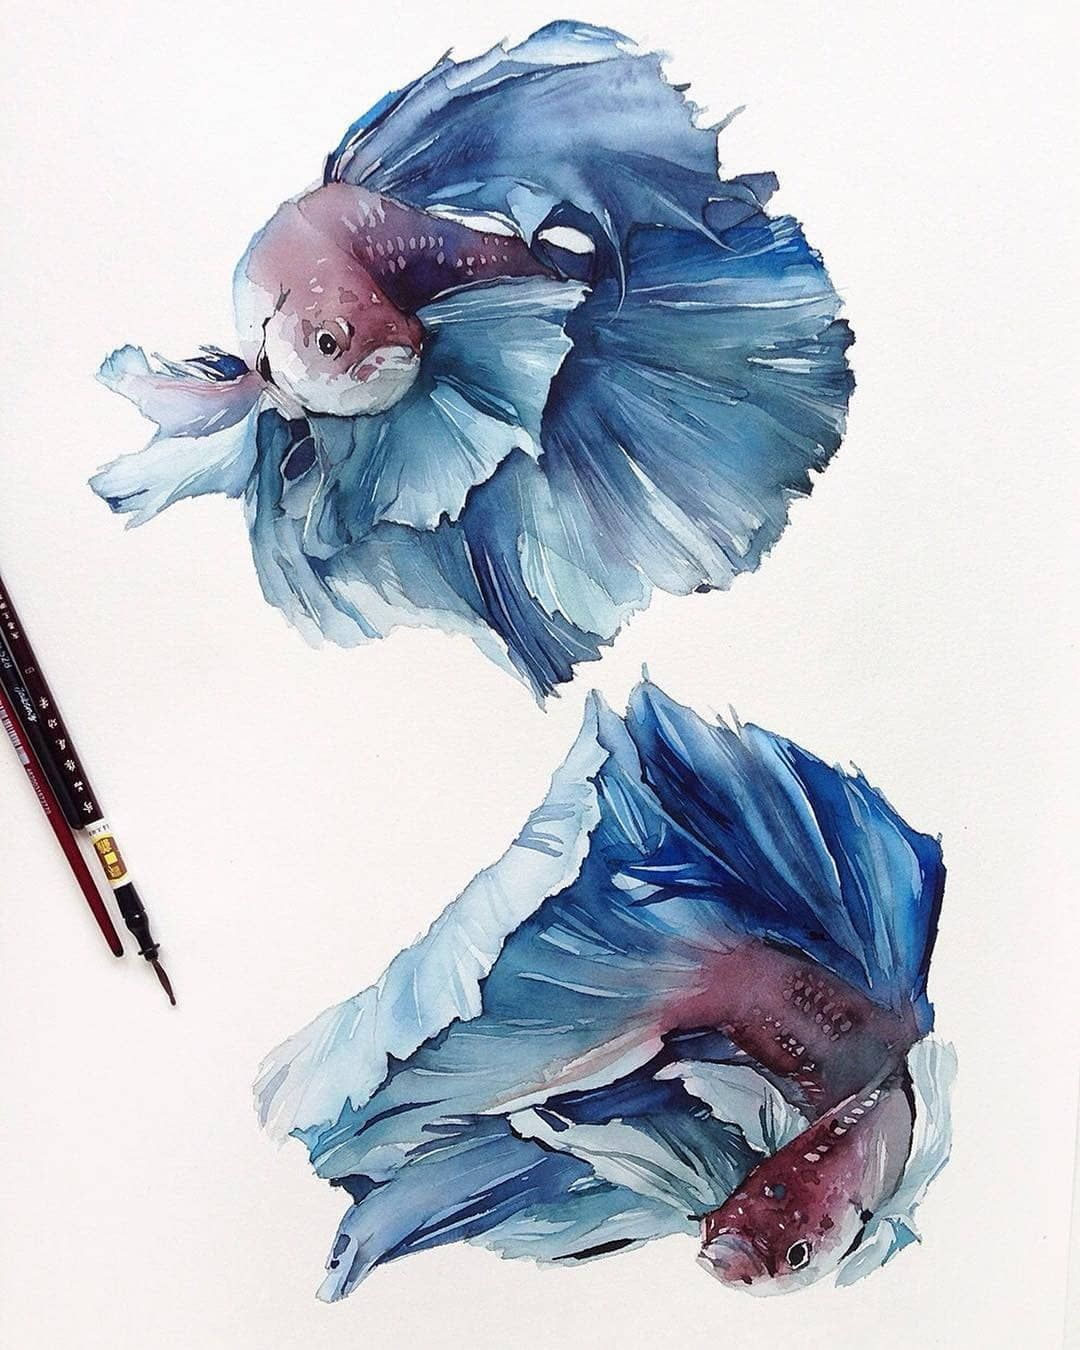 Watercolor Gallery On Instagram More Art Every Day On